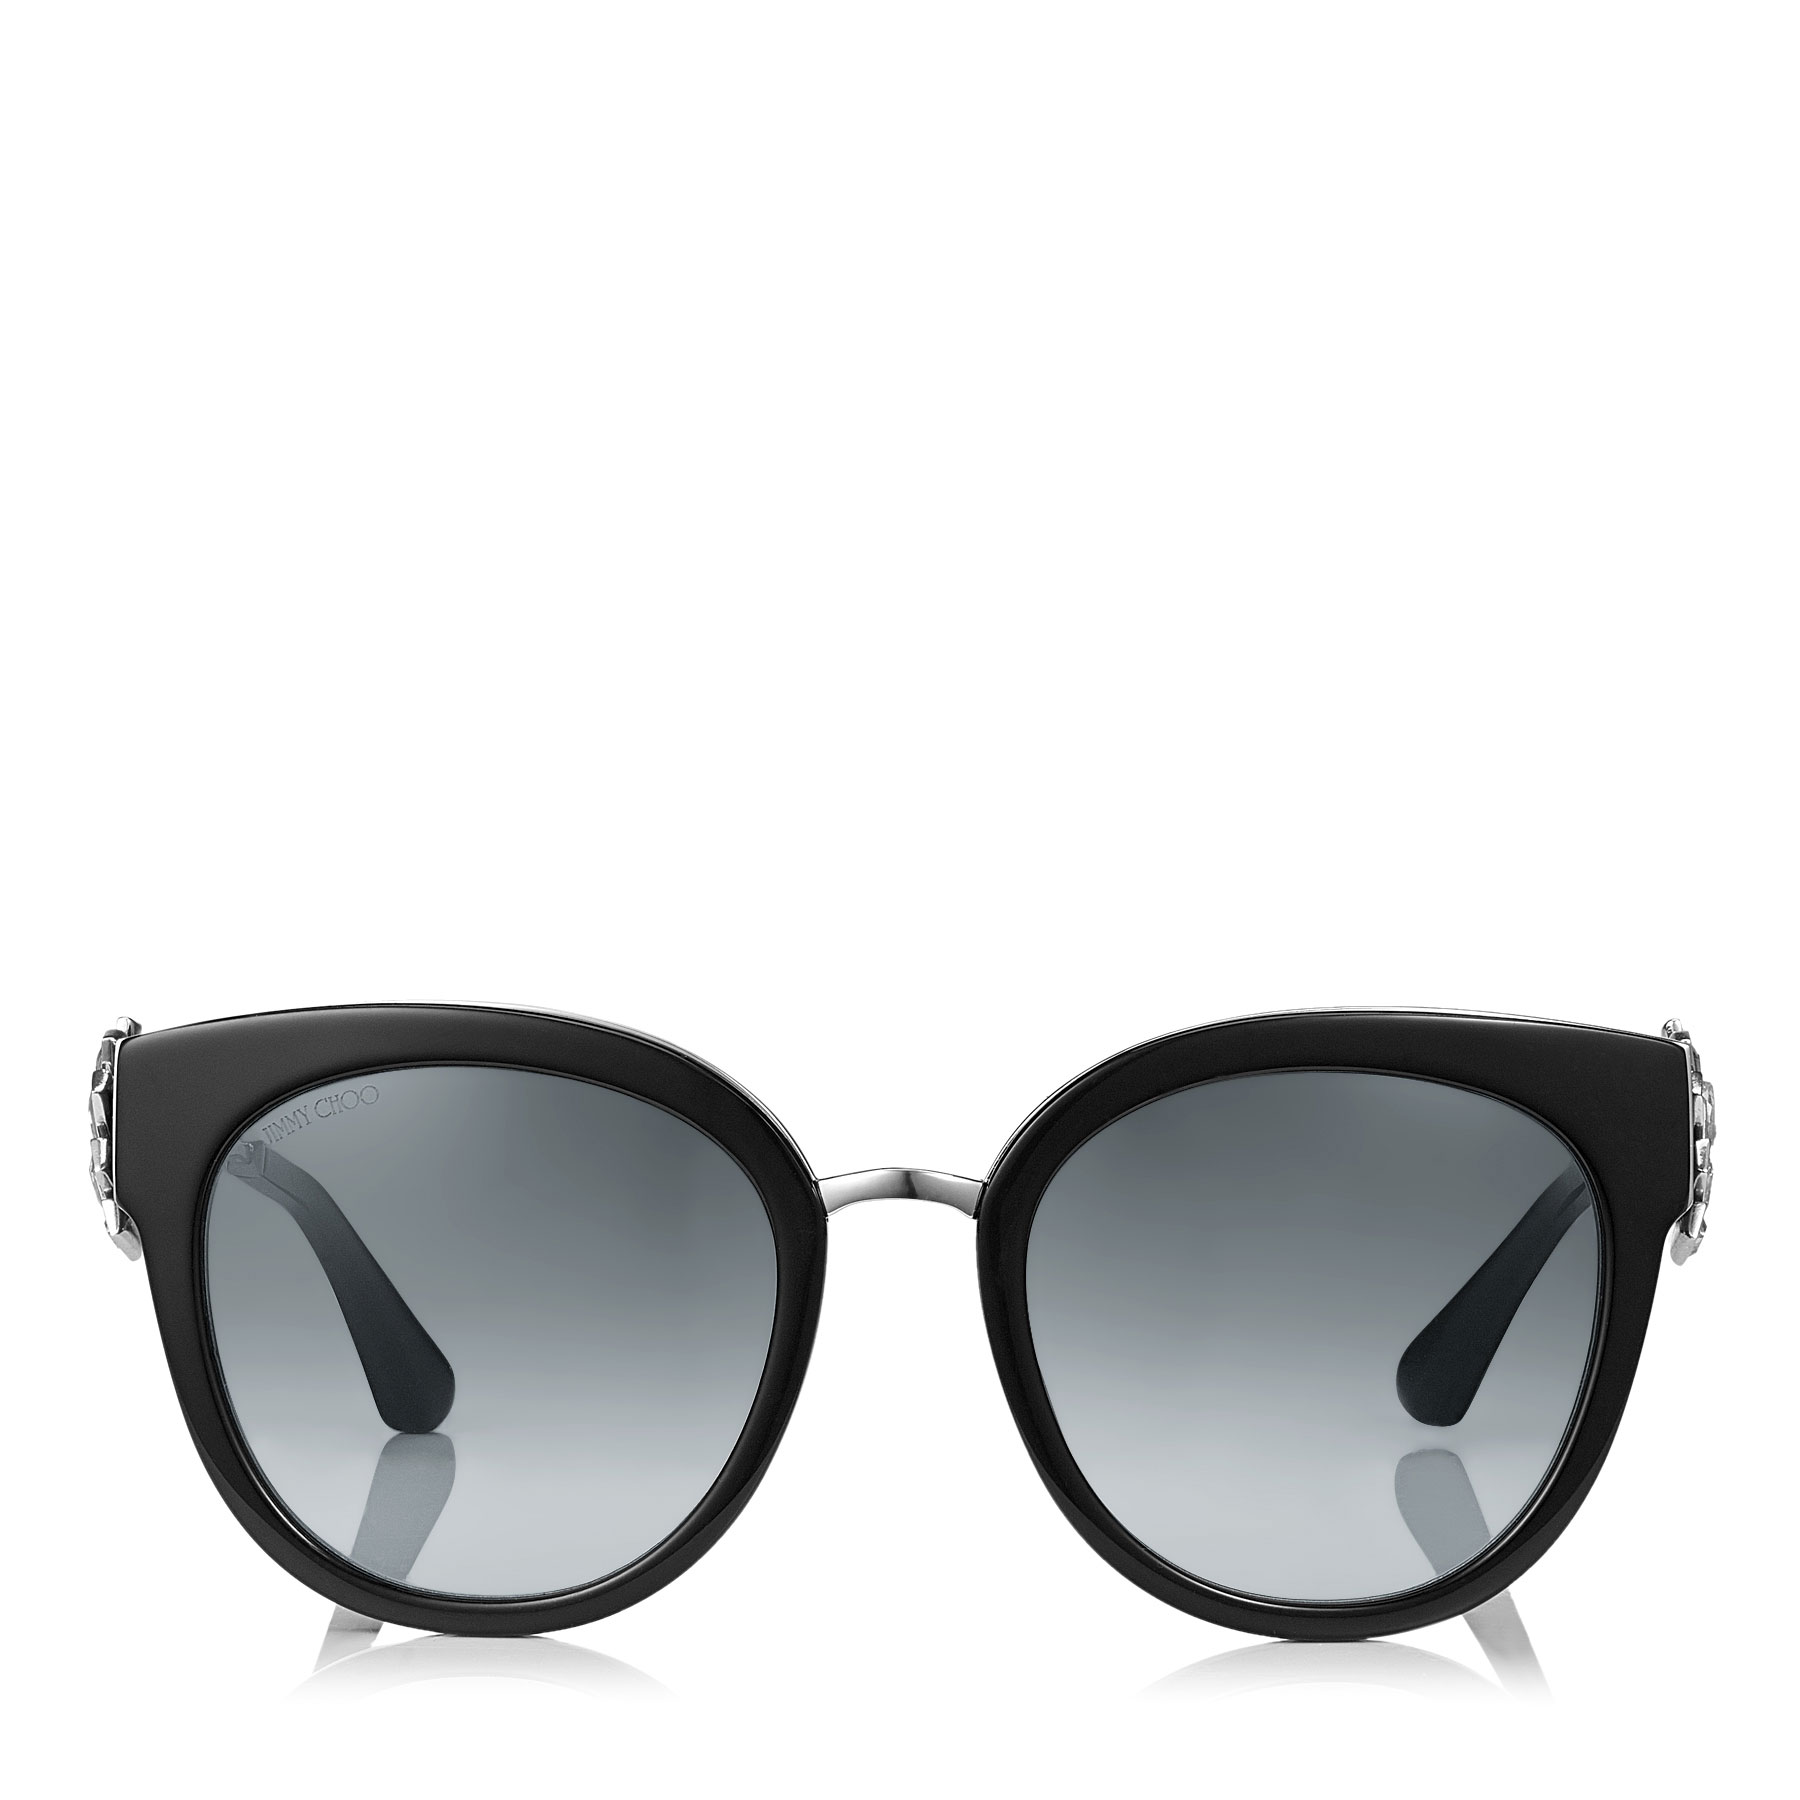 JADE/S 53 Black and Palladium Oversized Sunglasses with Clip On Earrings